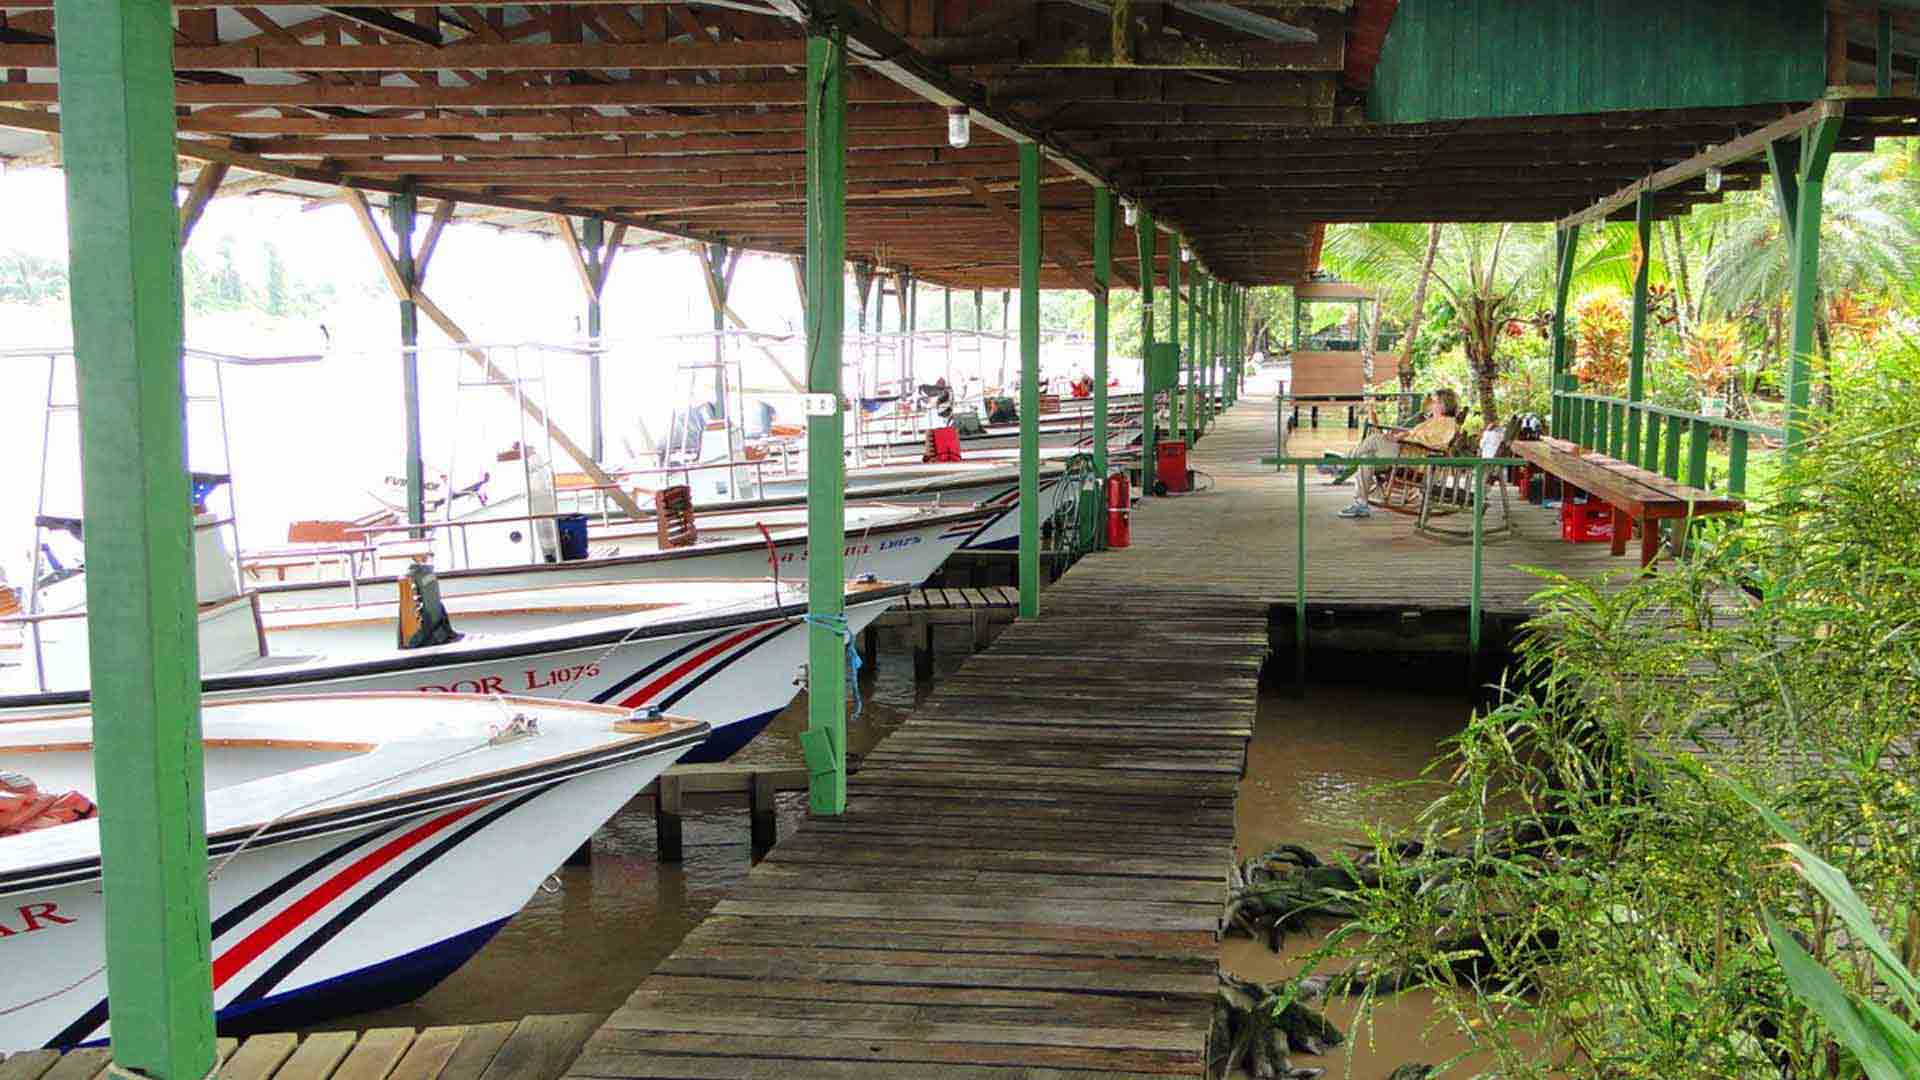 Covered Boat Dock with Fleet of Boats